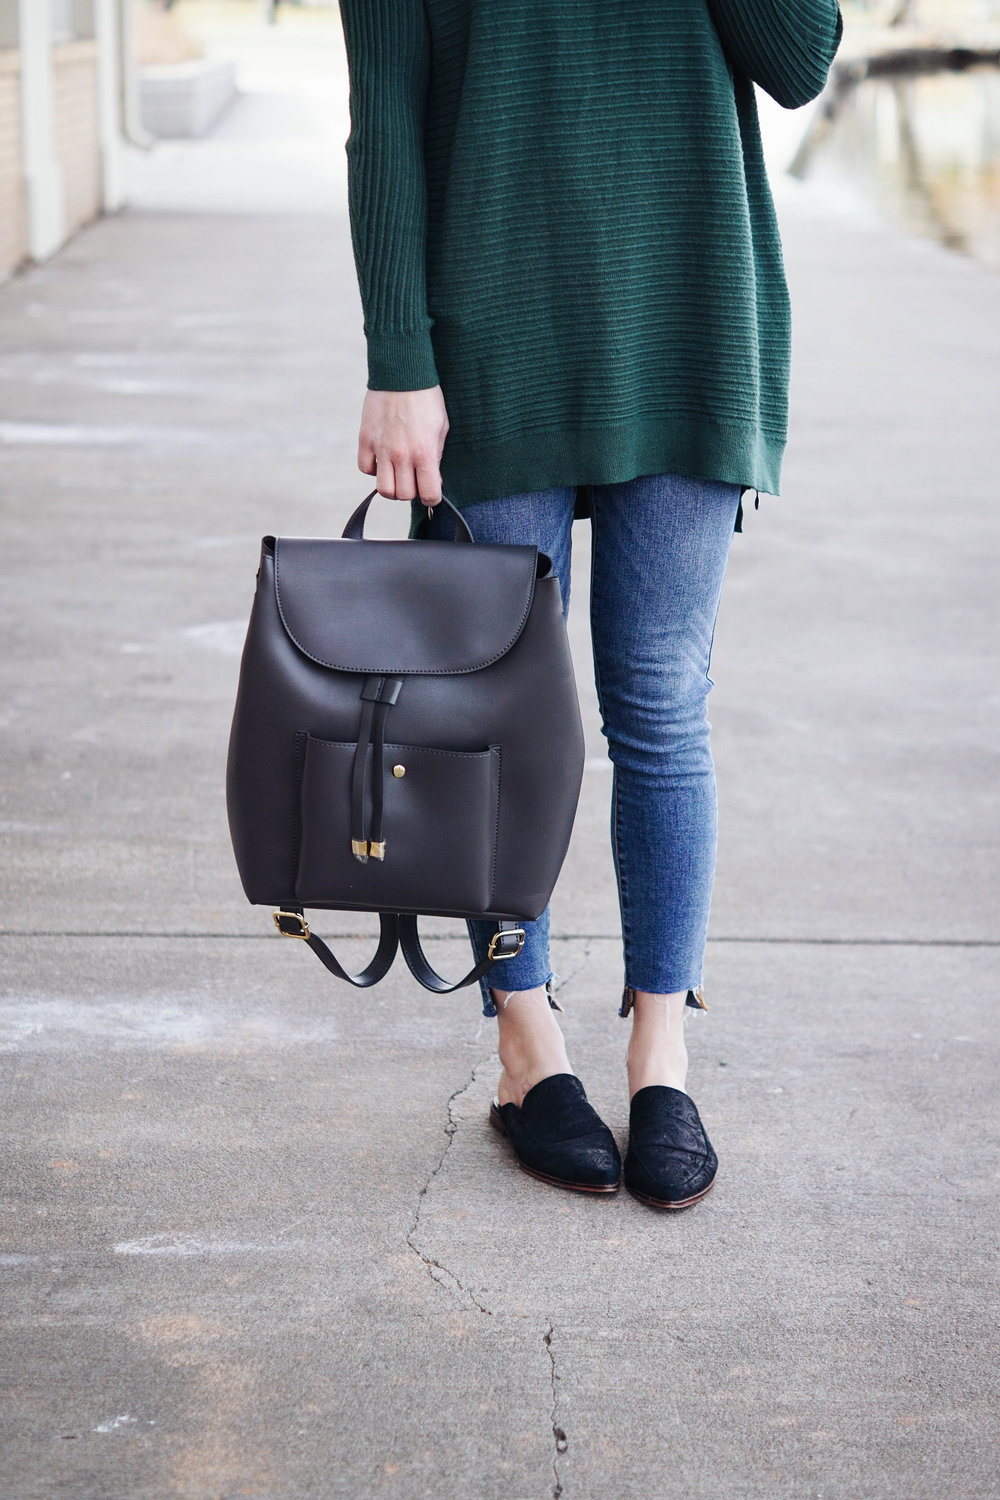 Mules , similar  HERE ,  HERE,  and  HERE , love  THESE   //  Raw Hem Denim  // Sweater  similar  and  HERE  // Backpack  similar  and  HERE